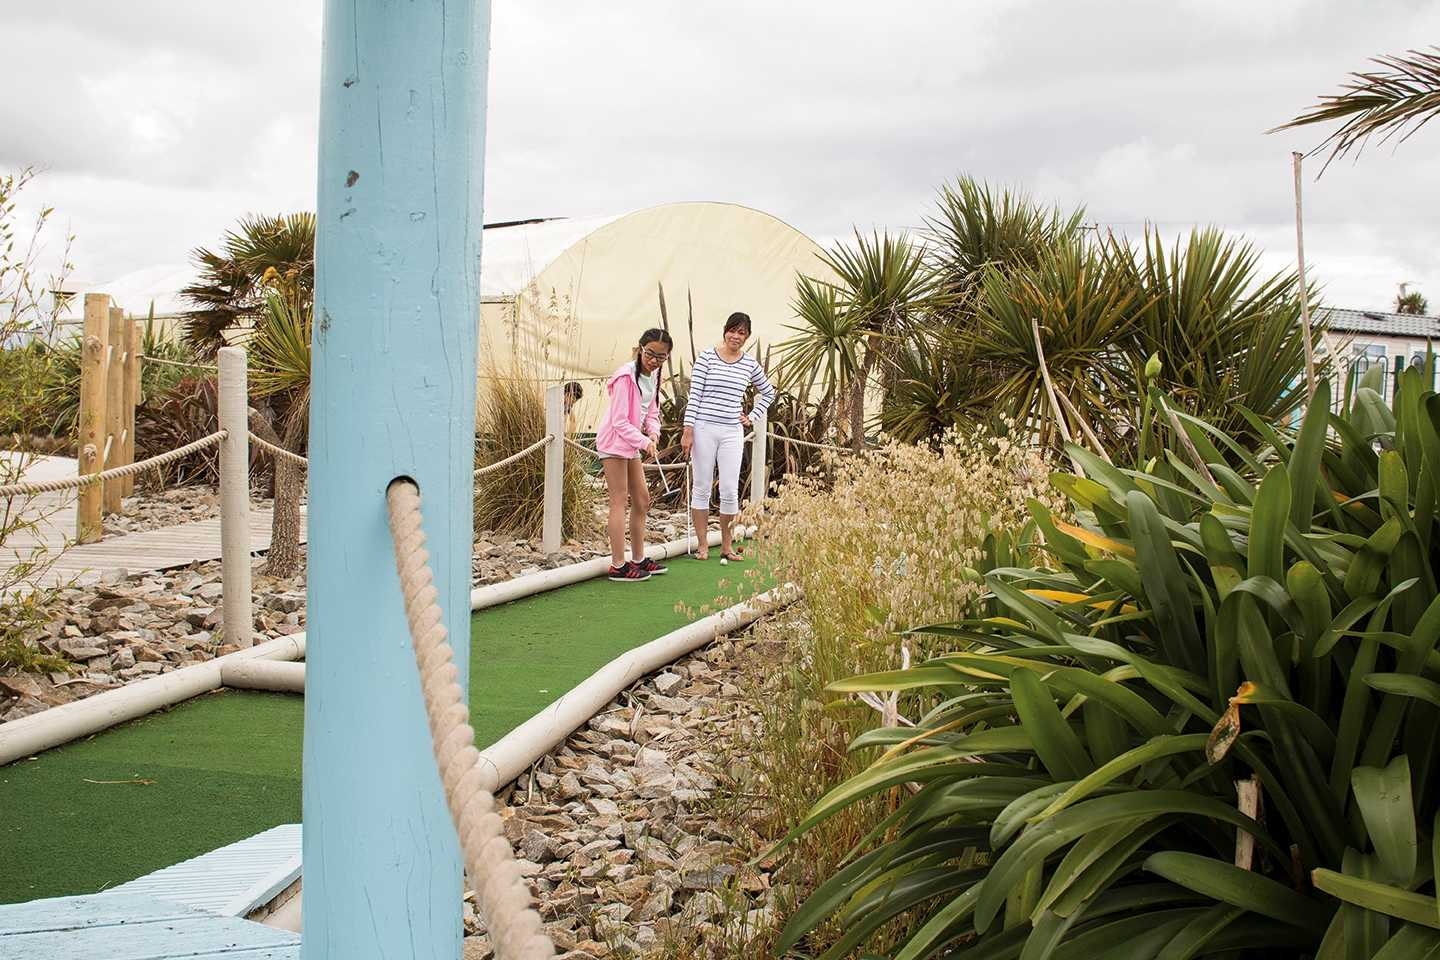 A family playing golf on the crazy golf course